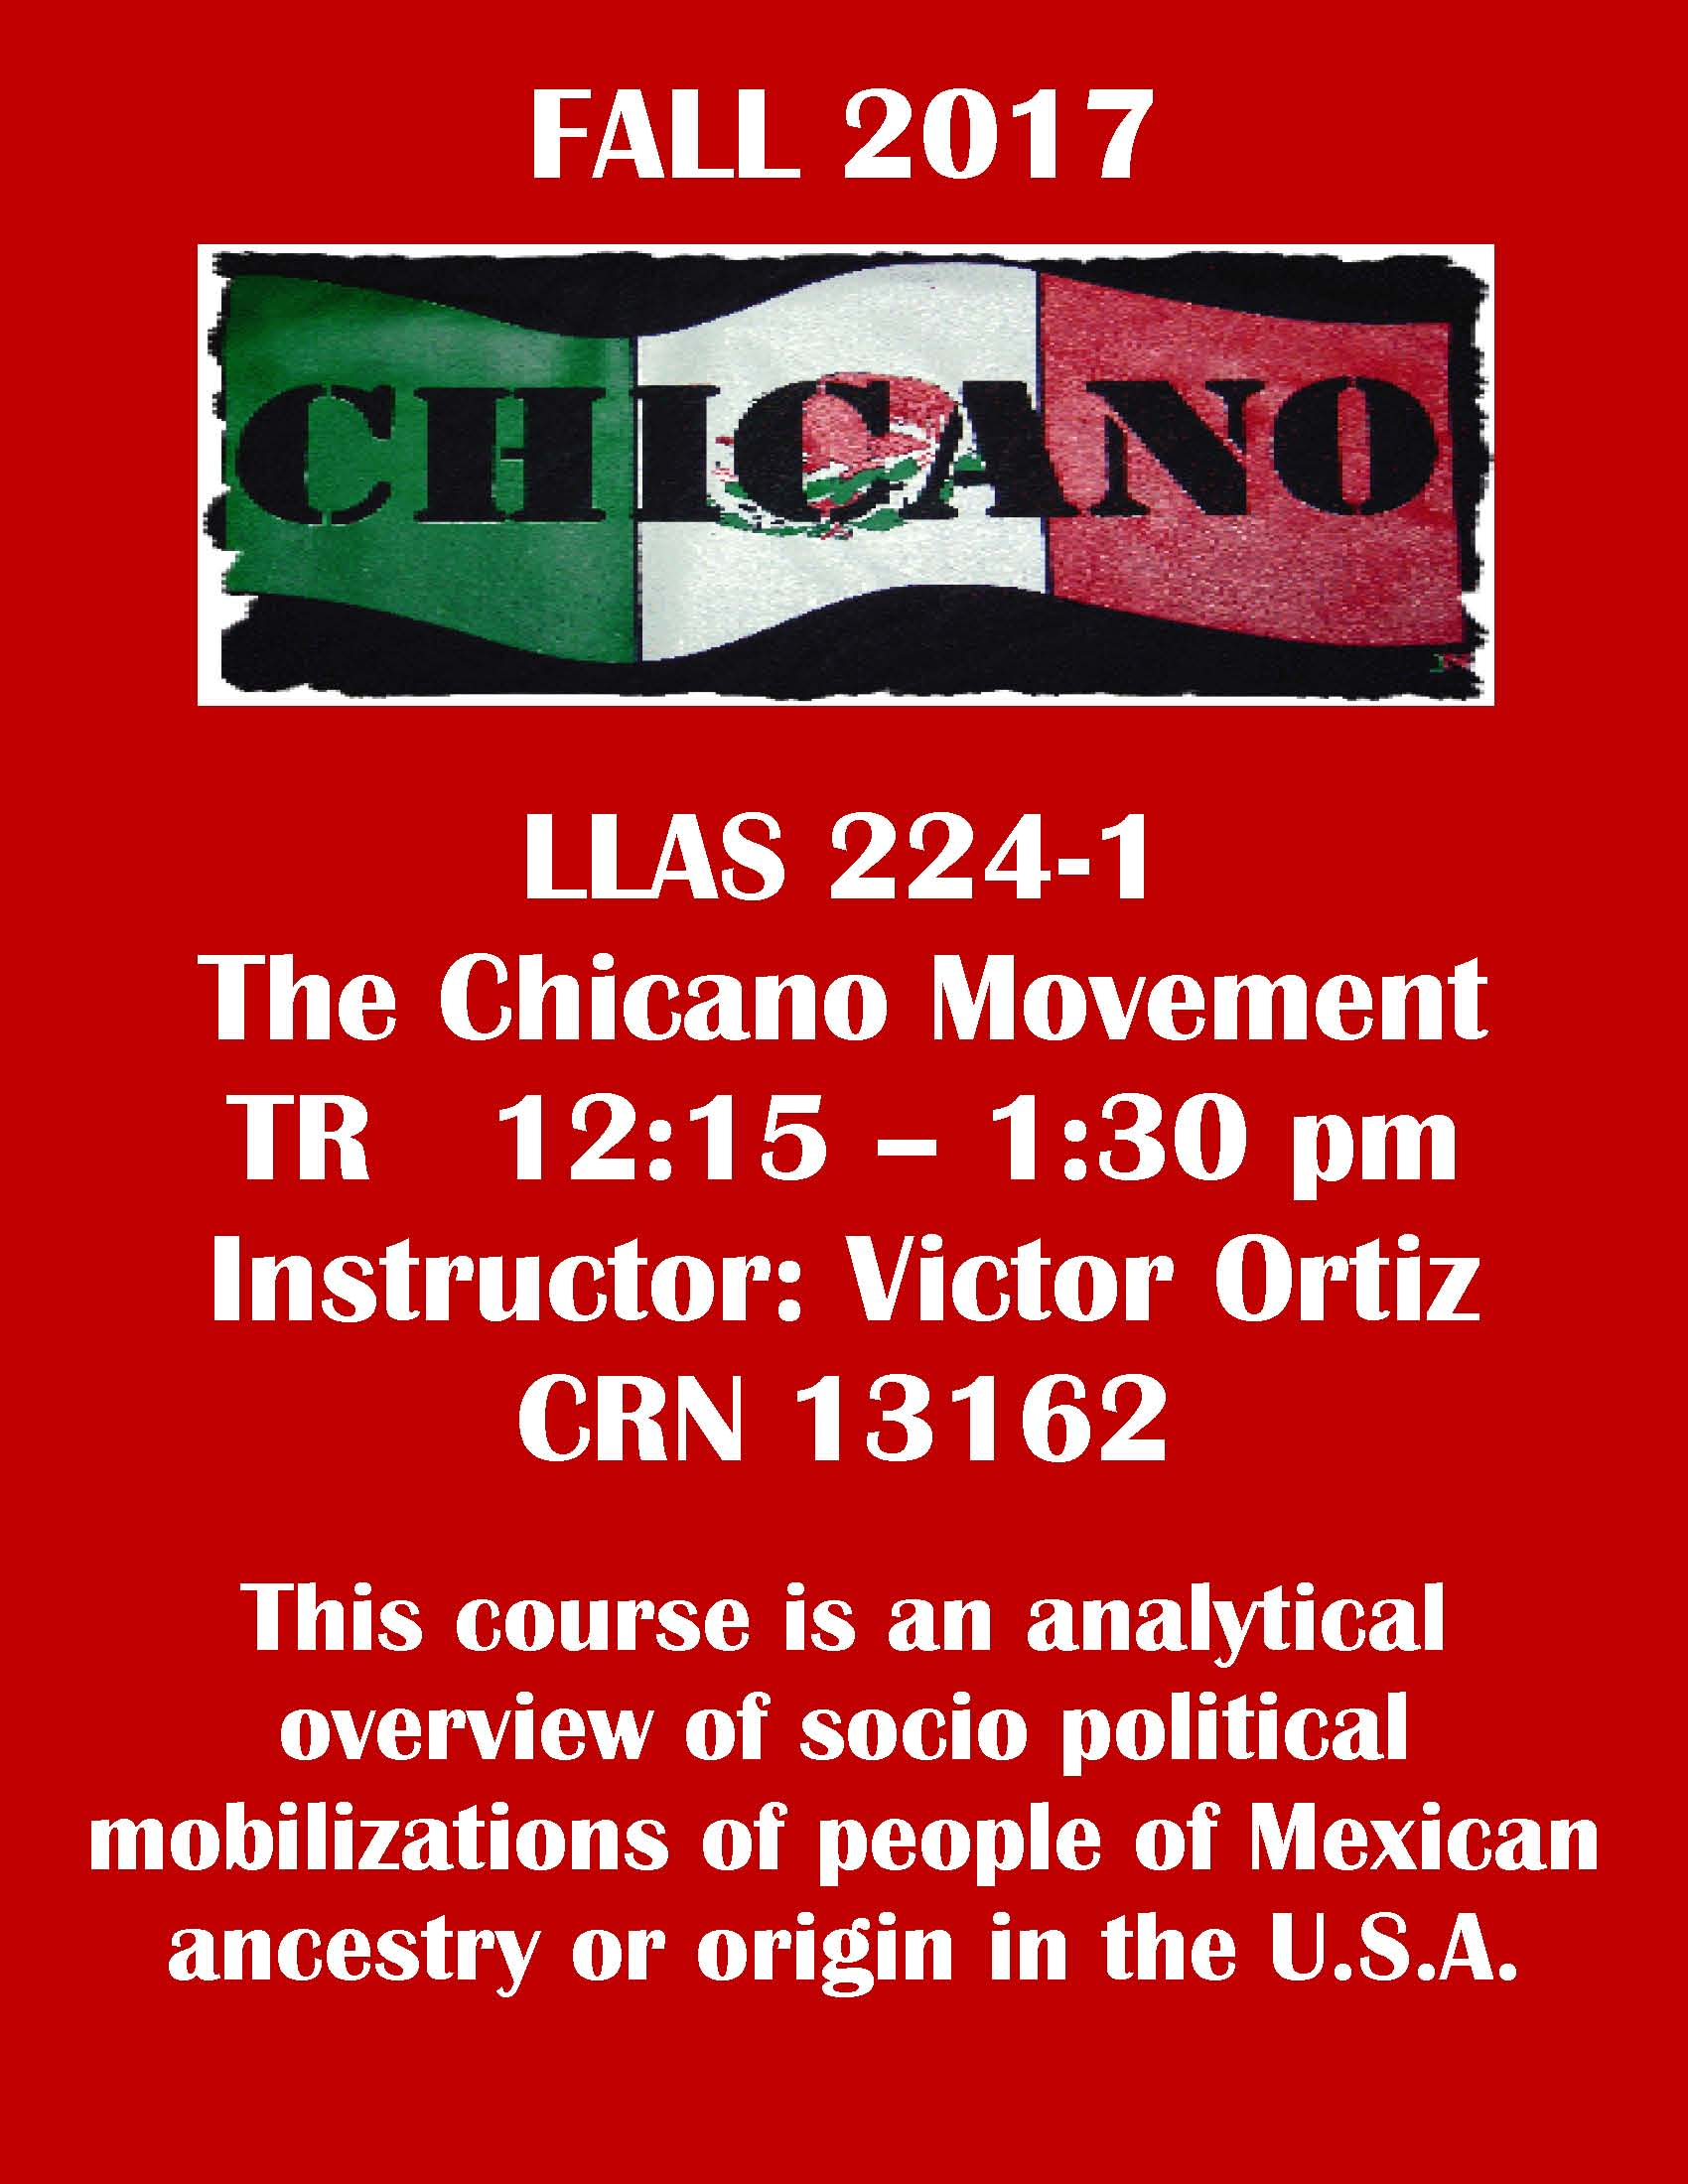 LLAS 224-1 - The Chicano Movement